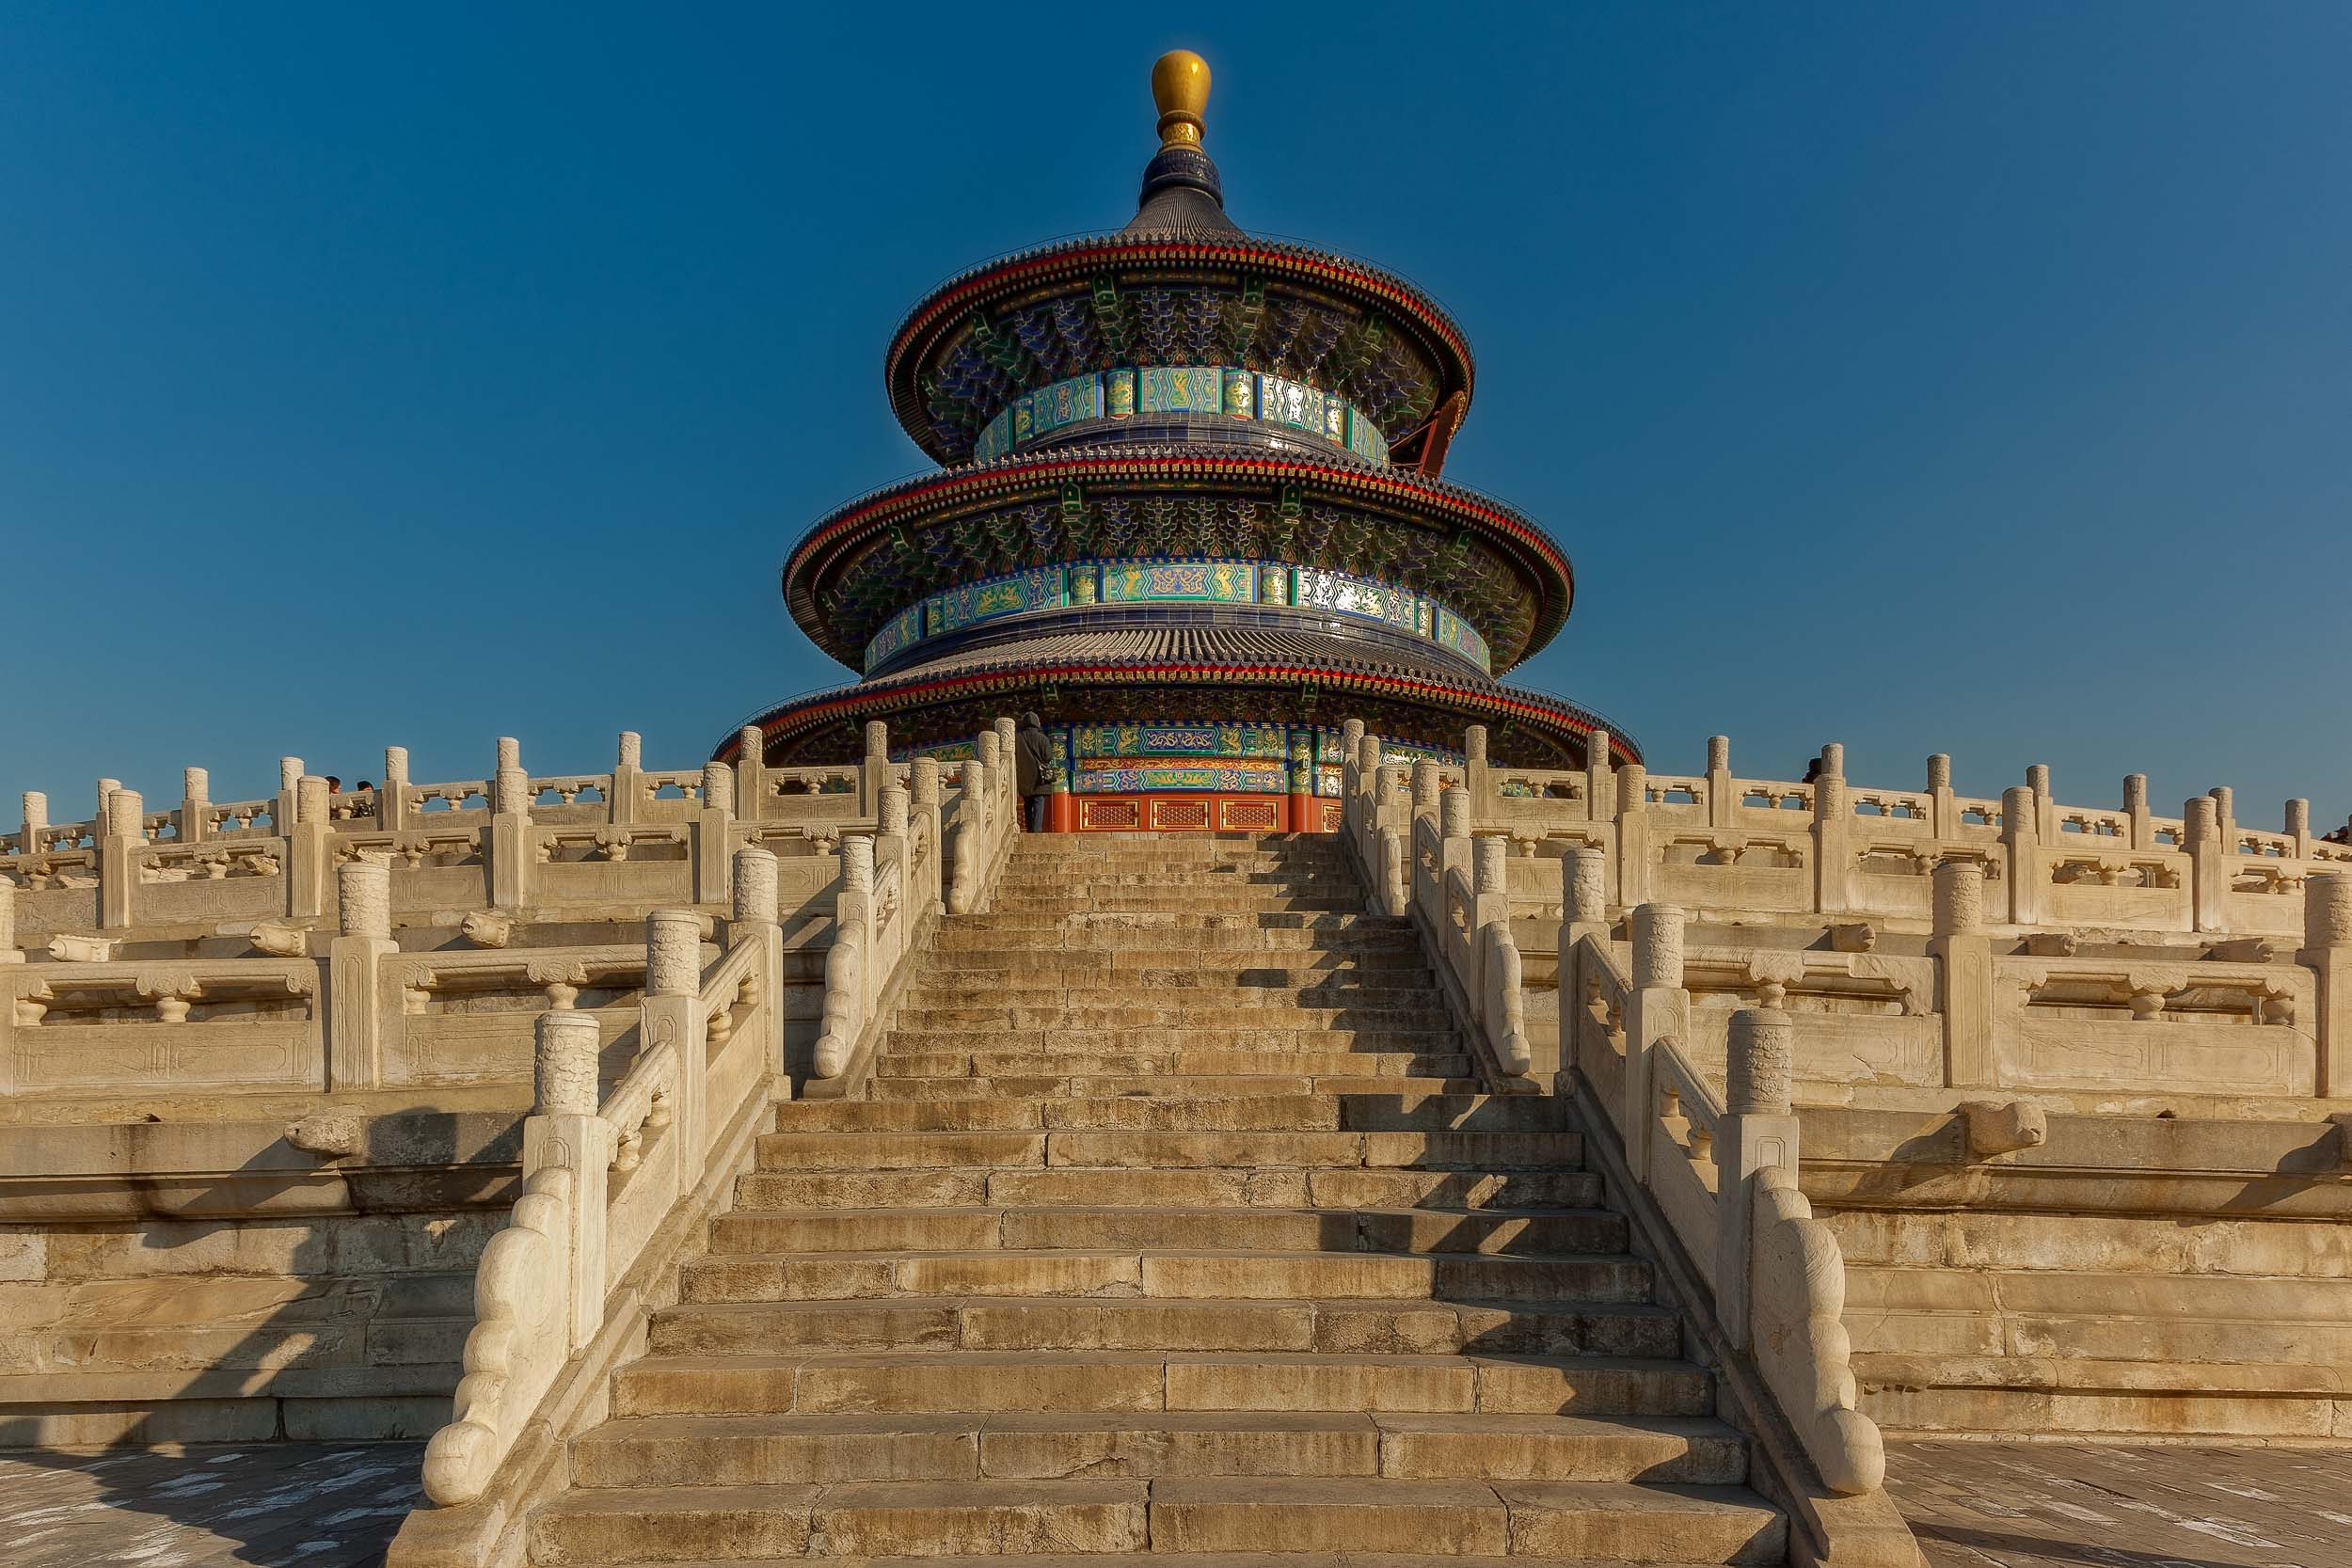 Architectural splendor in the grounds of the Temple Of Heaven in Beijing.